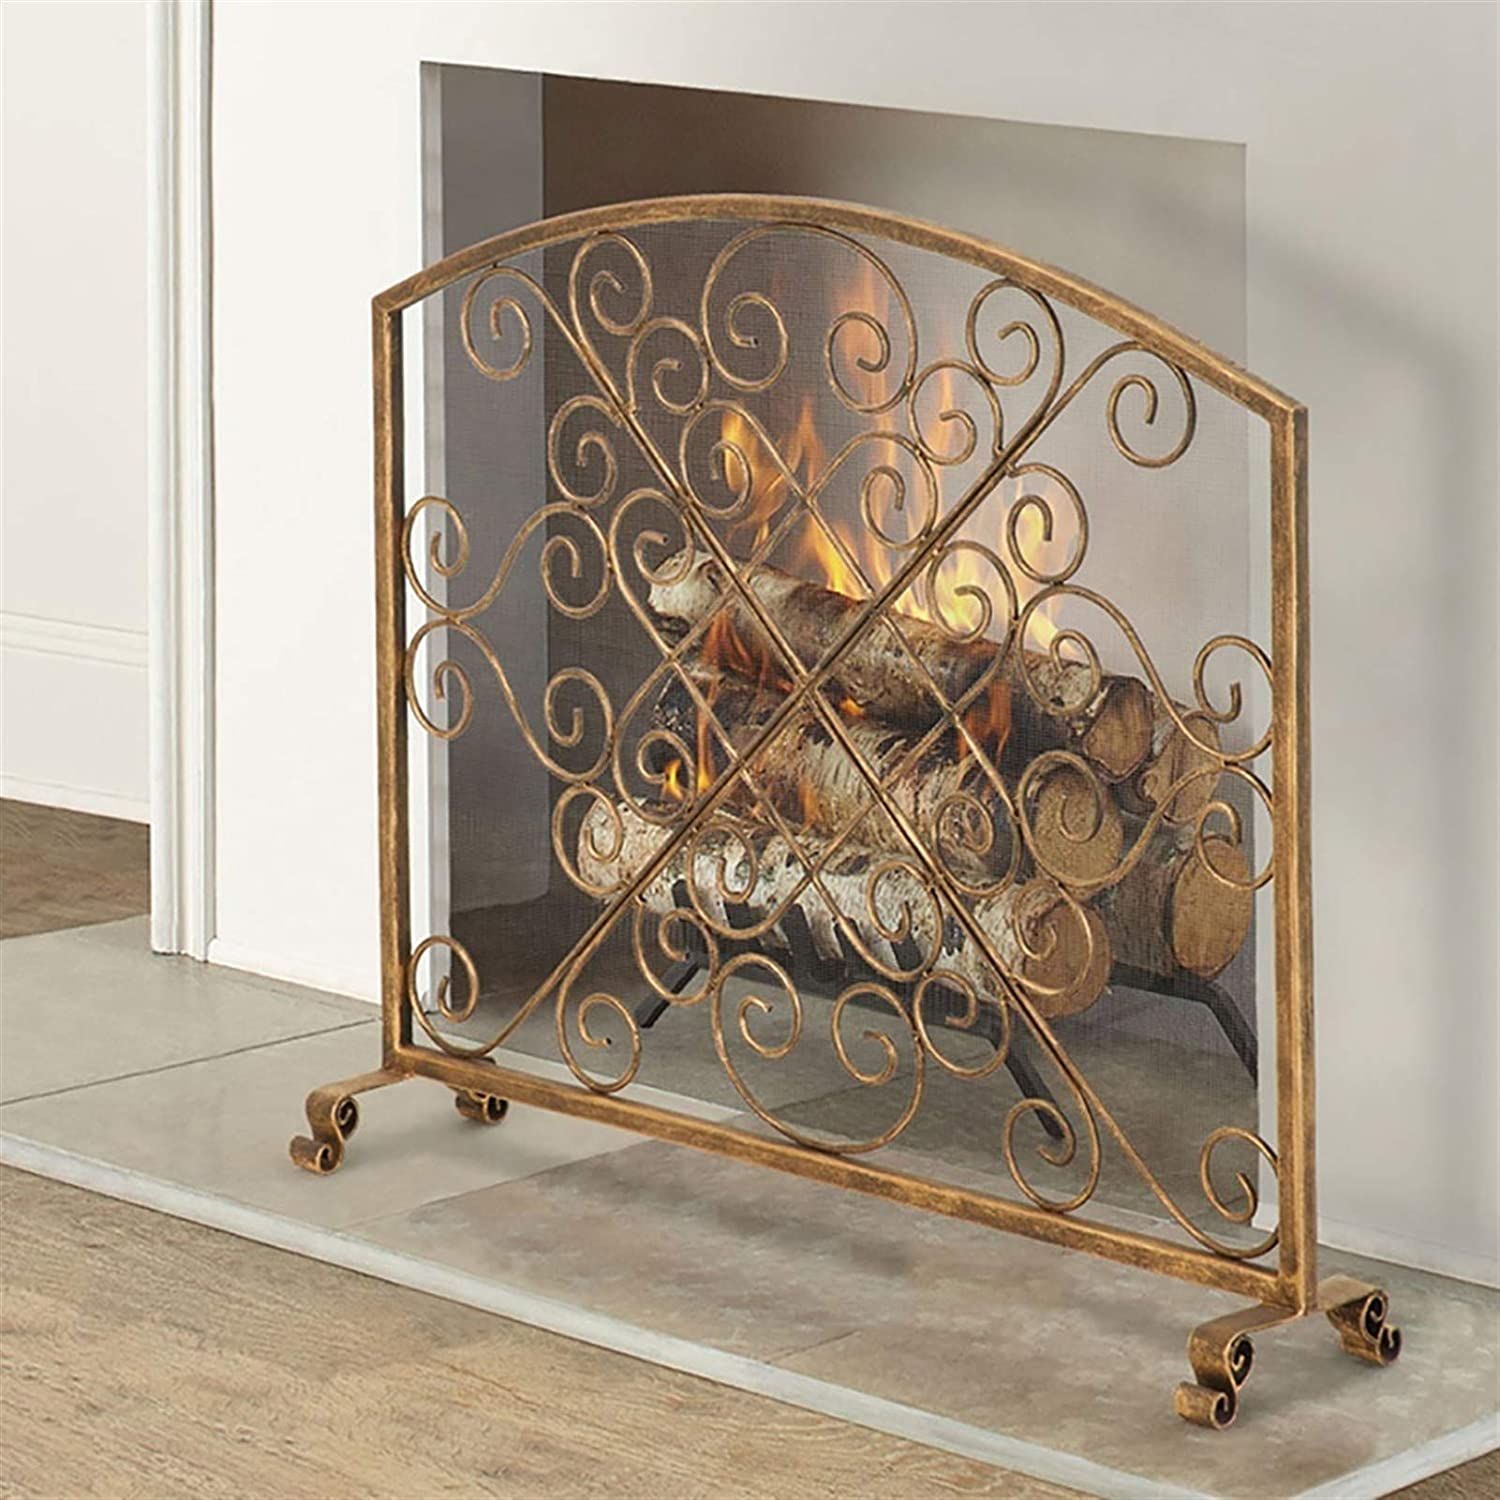 LLFF 33.1×38.6 Inch Luxury goods Single Panel Fireplace Max 66% OFF Iron Wrought Screen